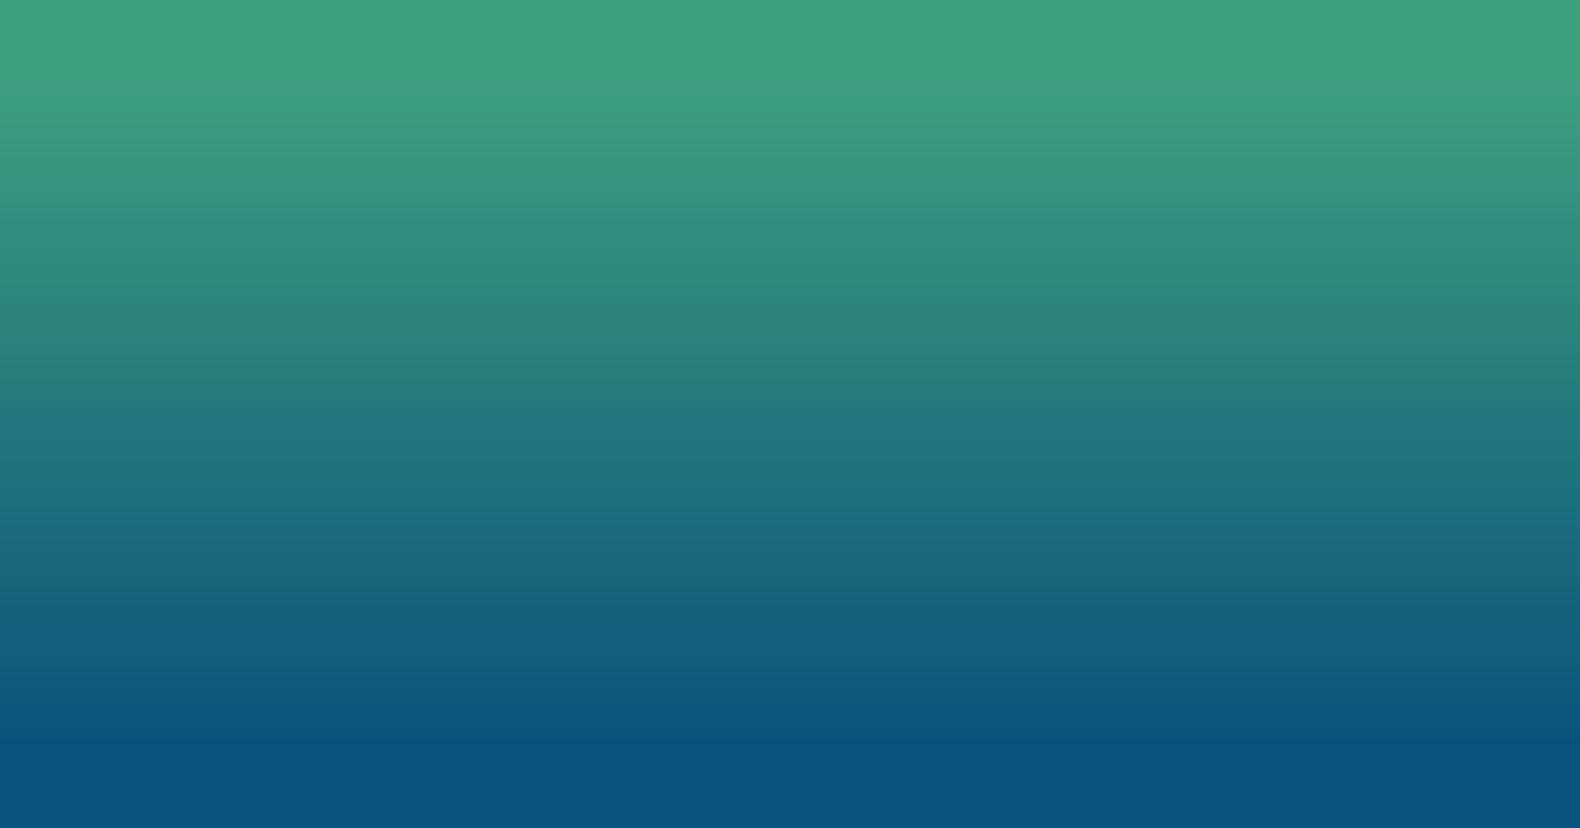 Green to Blue UI Gradient Background